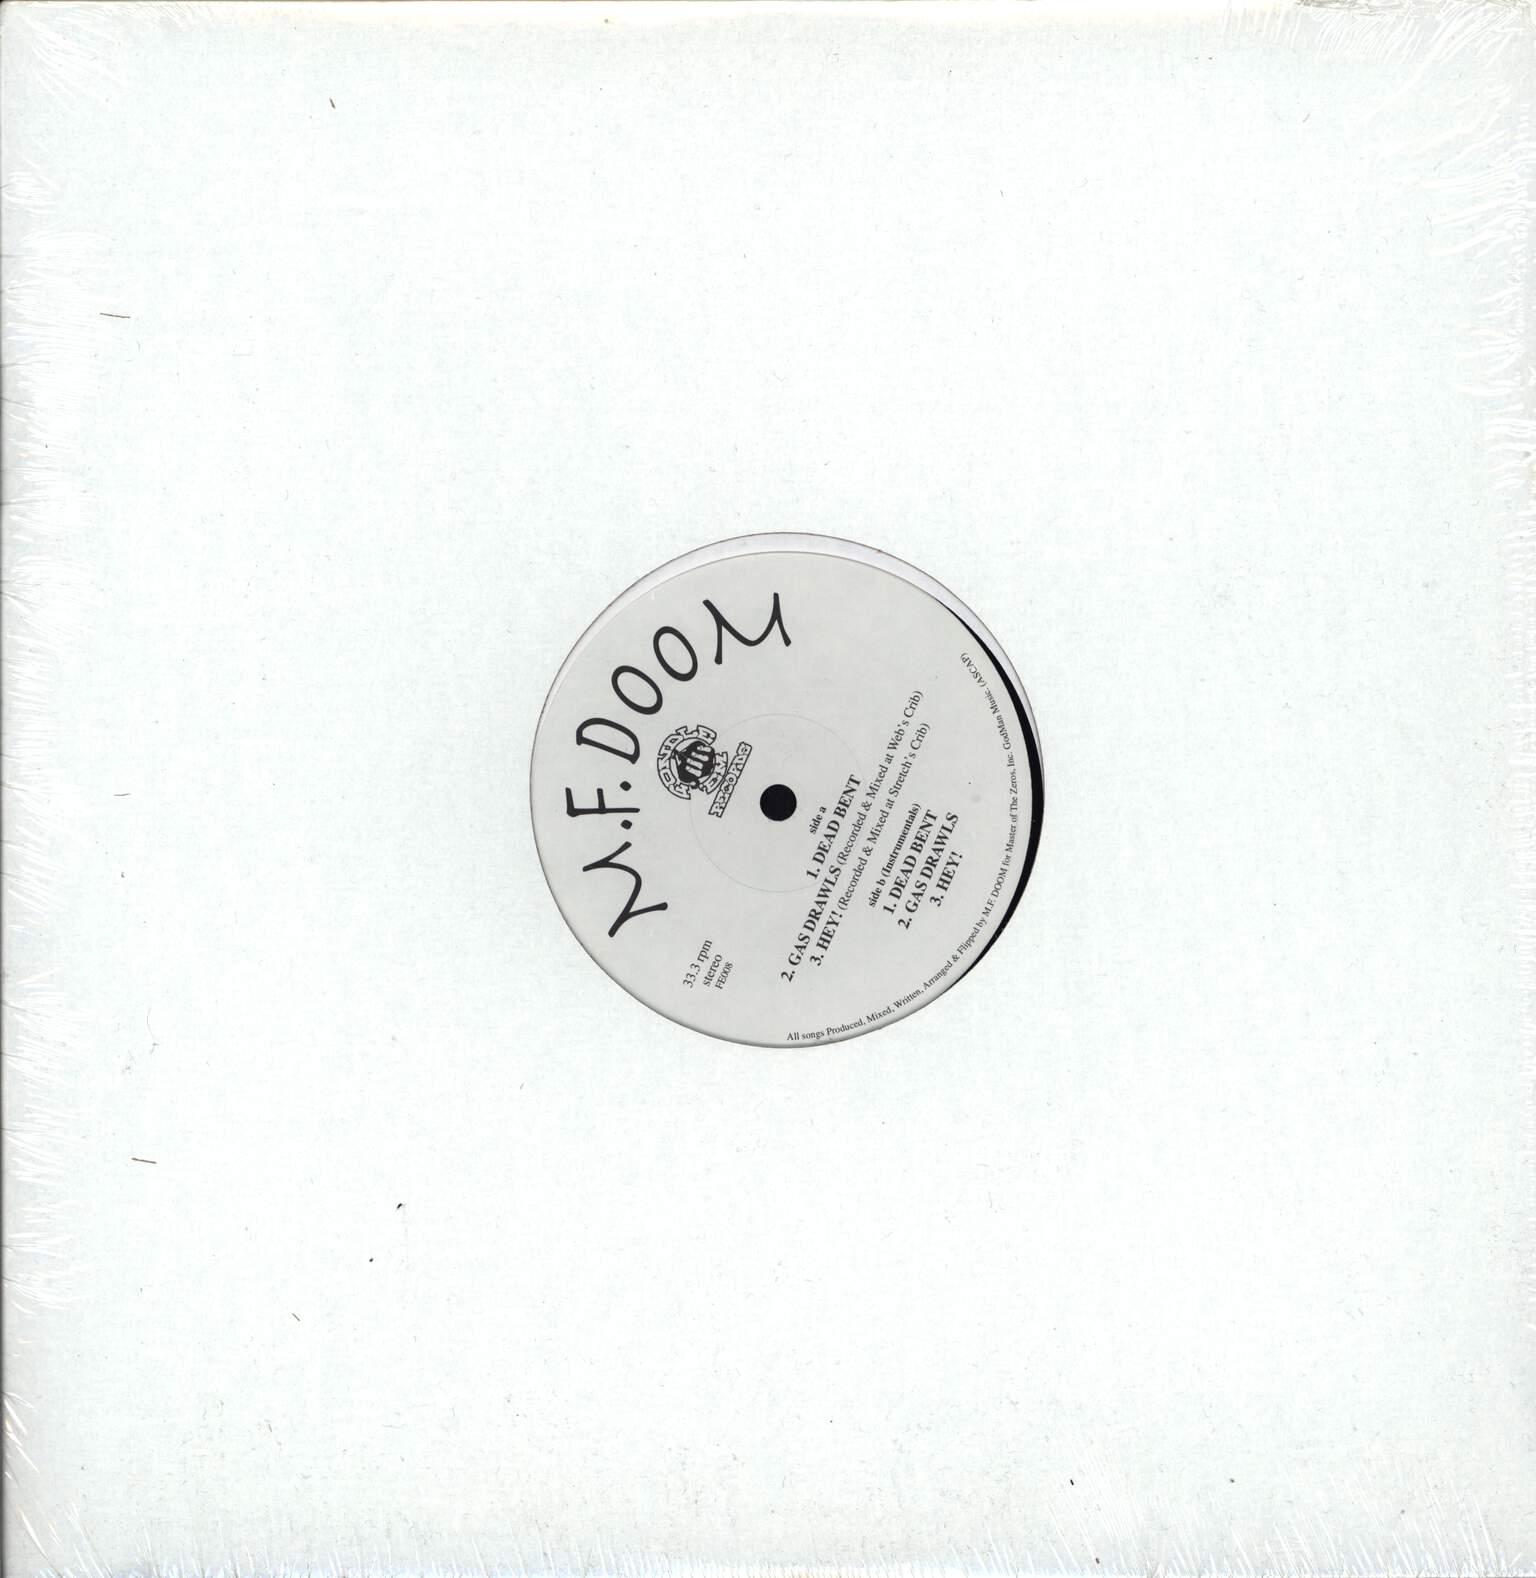 "Mf Doom: Dead Bent / Gas Drawls / Hey!, 12"" Maxi Single (Vinyl)"